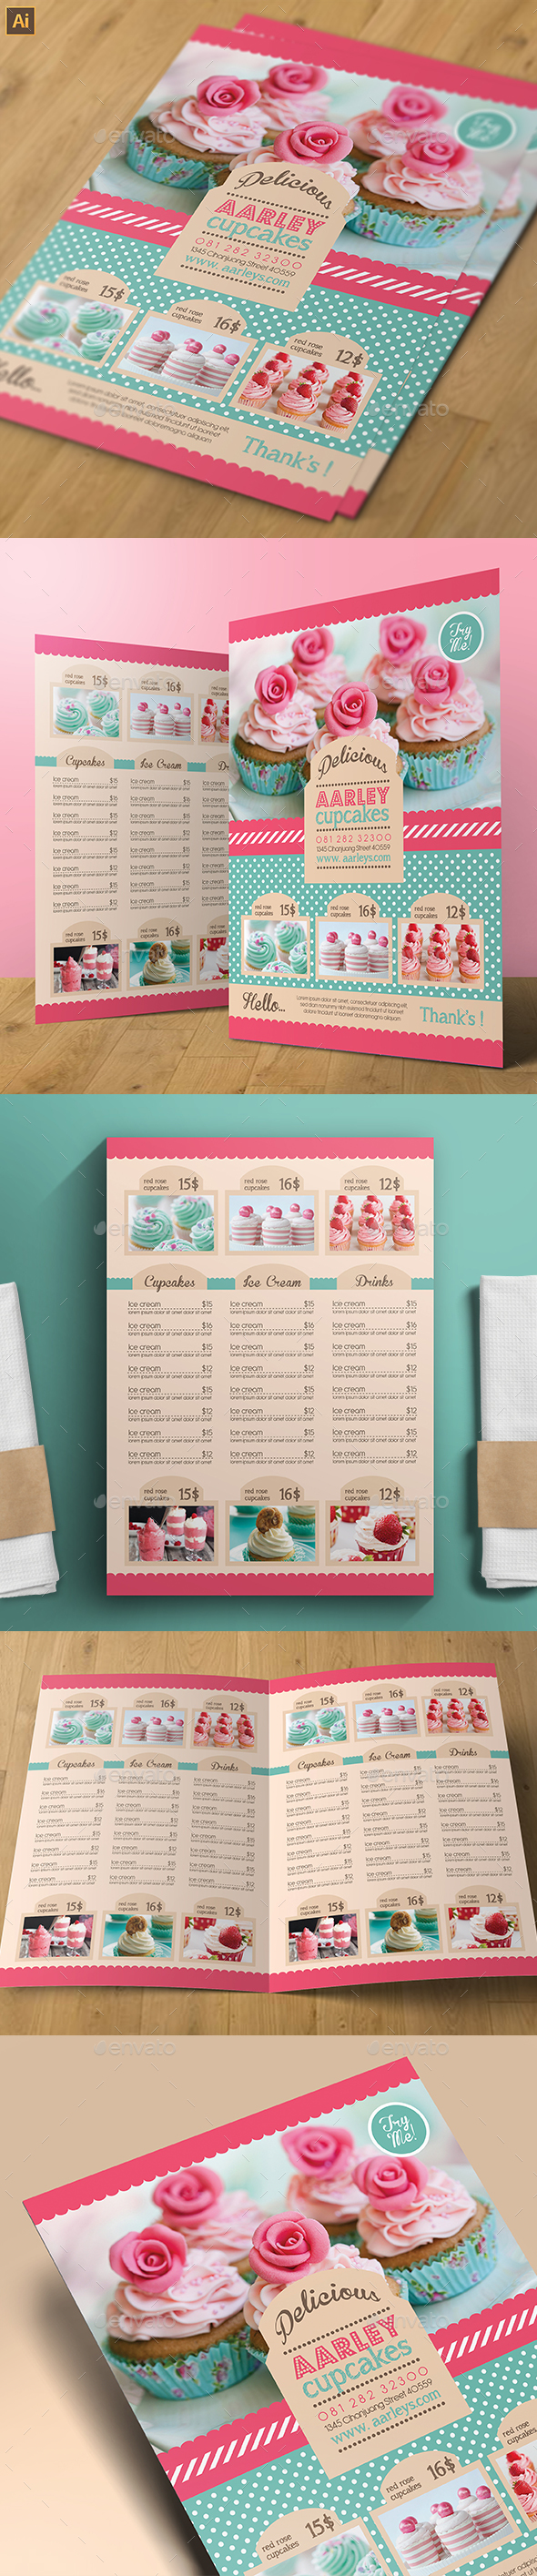 Pastry / Cake Menu - Food Menus Print Templates